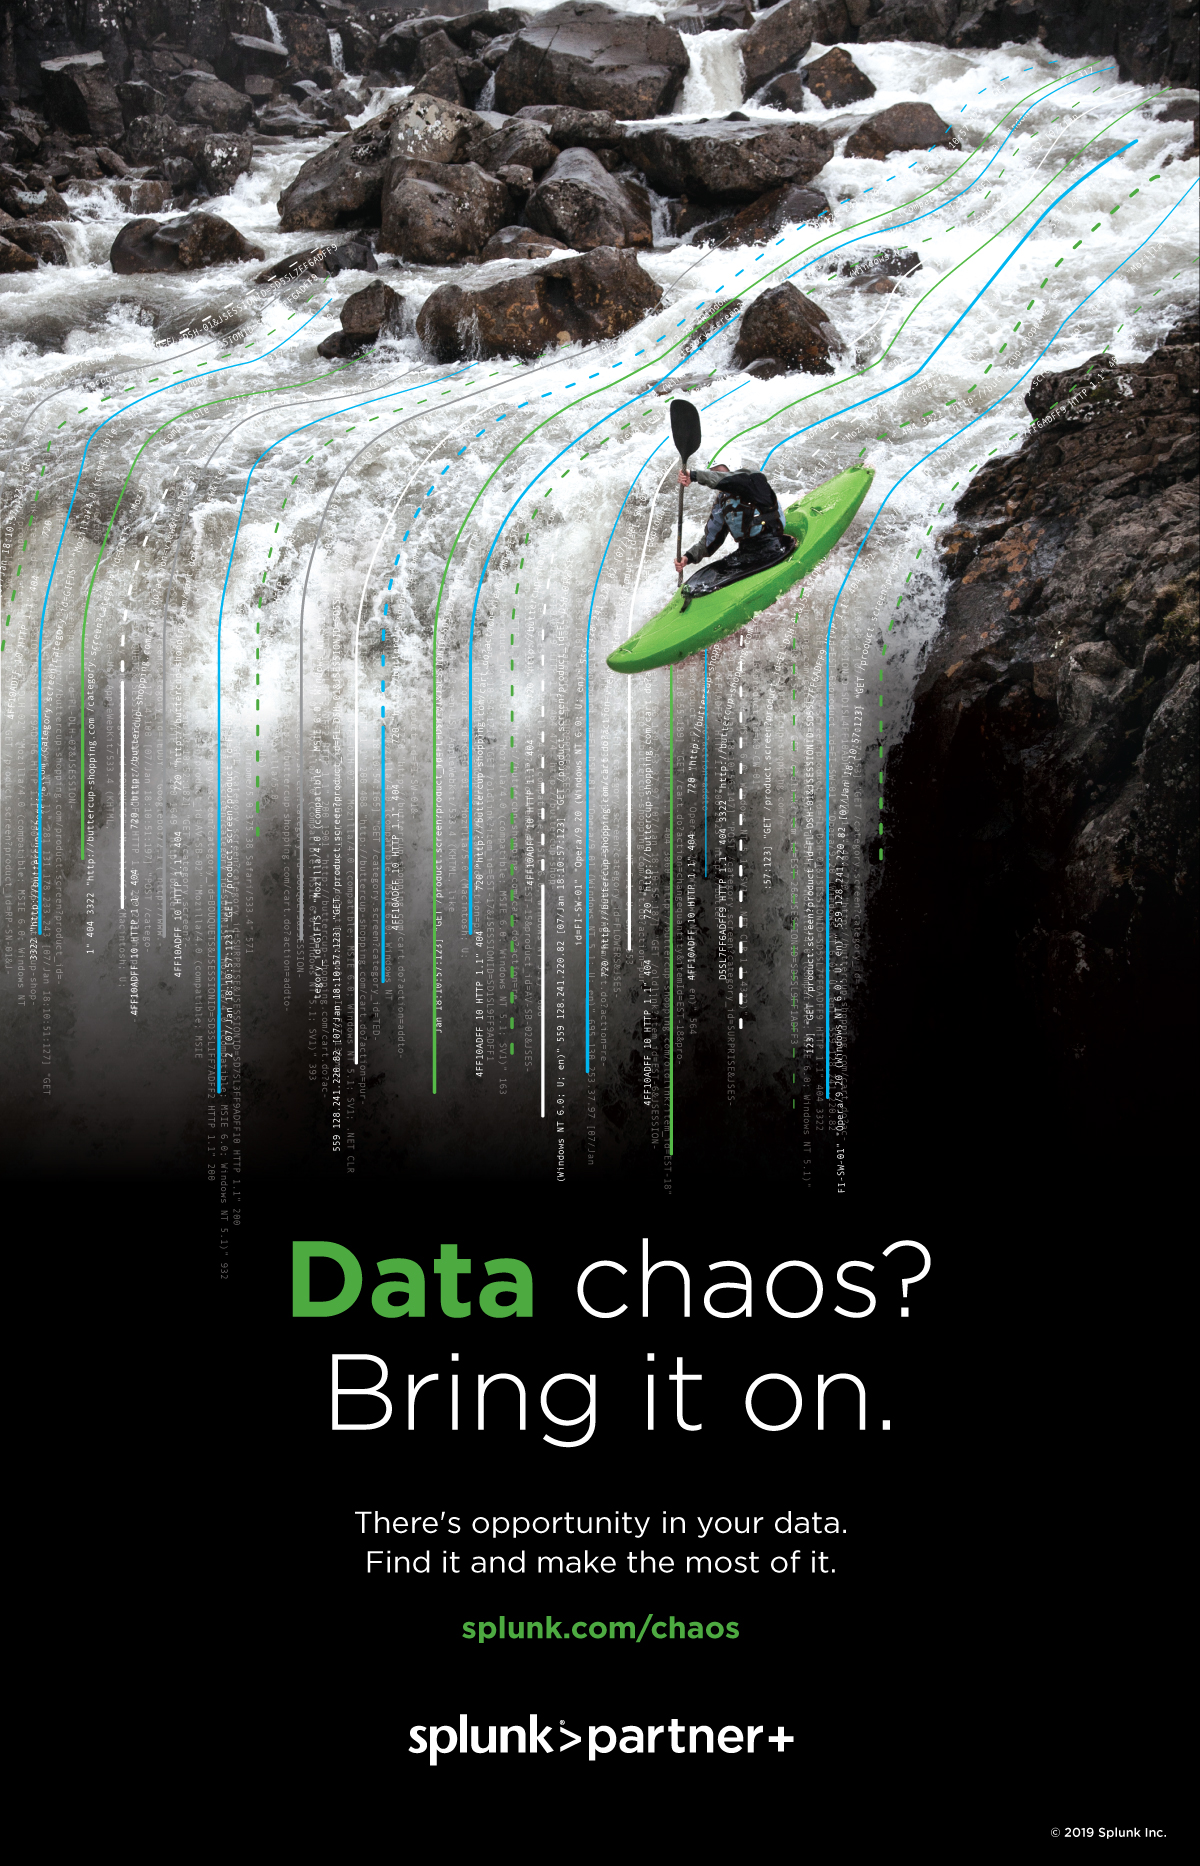 BRAND-Splunk-Brand-Extension-Kayaker-Ad-WITH-SUBHEAD-104-PREVIEW.jpg